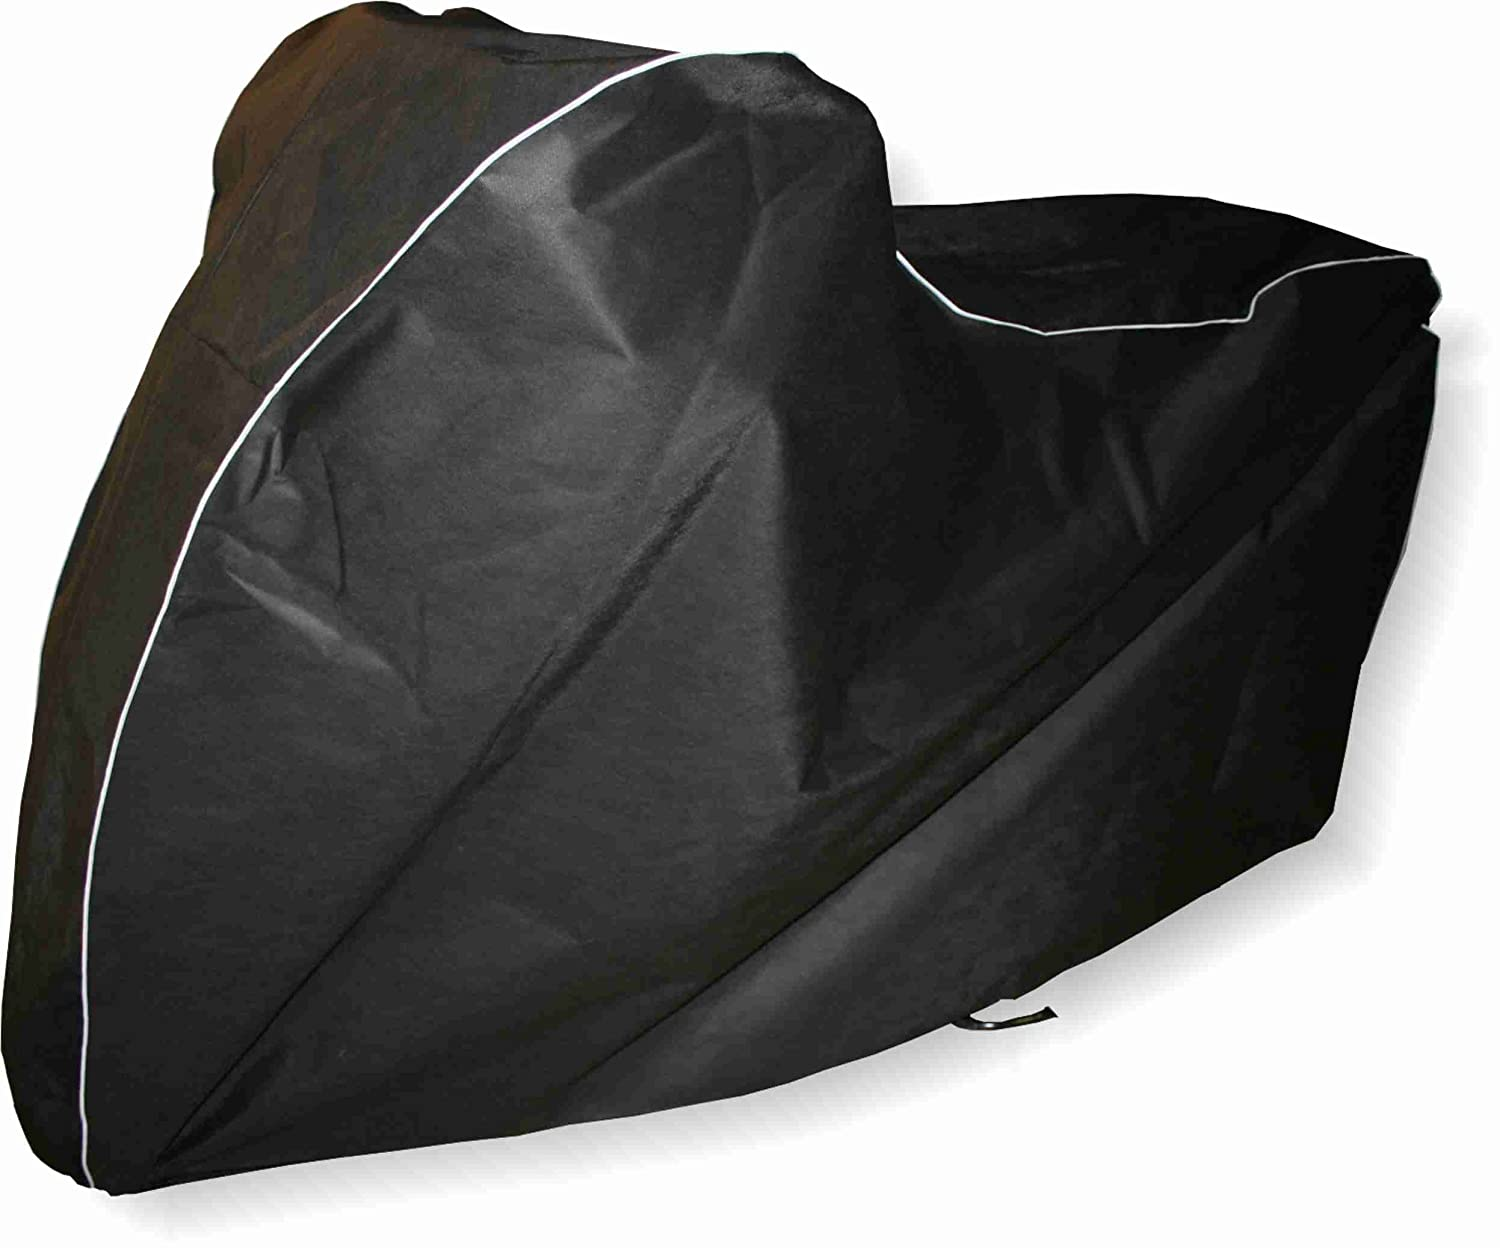 800XC XC 1050 Breathable Indoor Motorcycle Motorbike Dust cover No Print * Triumph Tiger 800